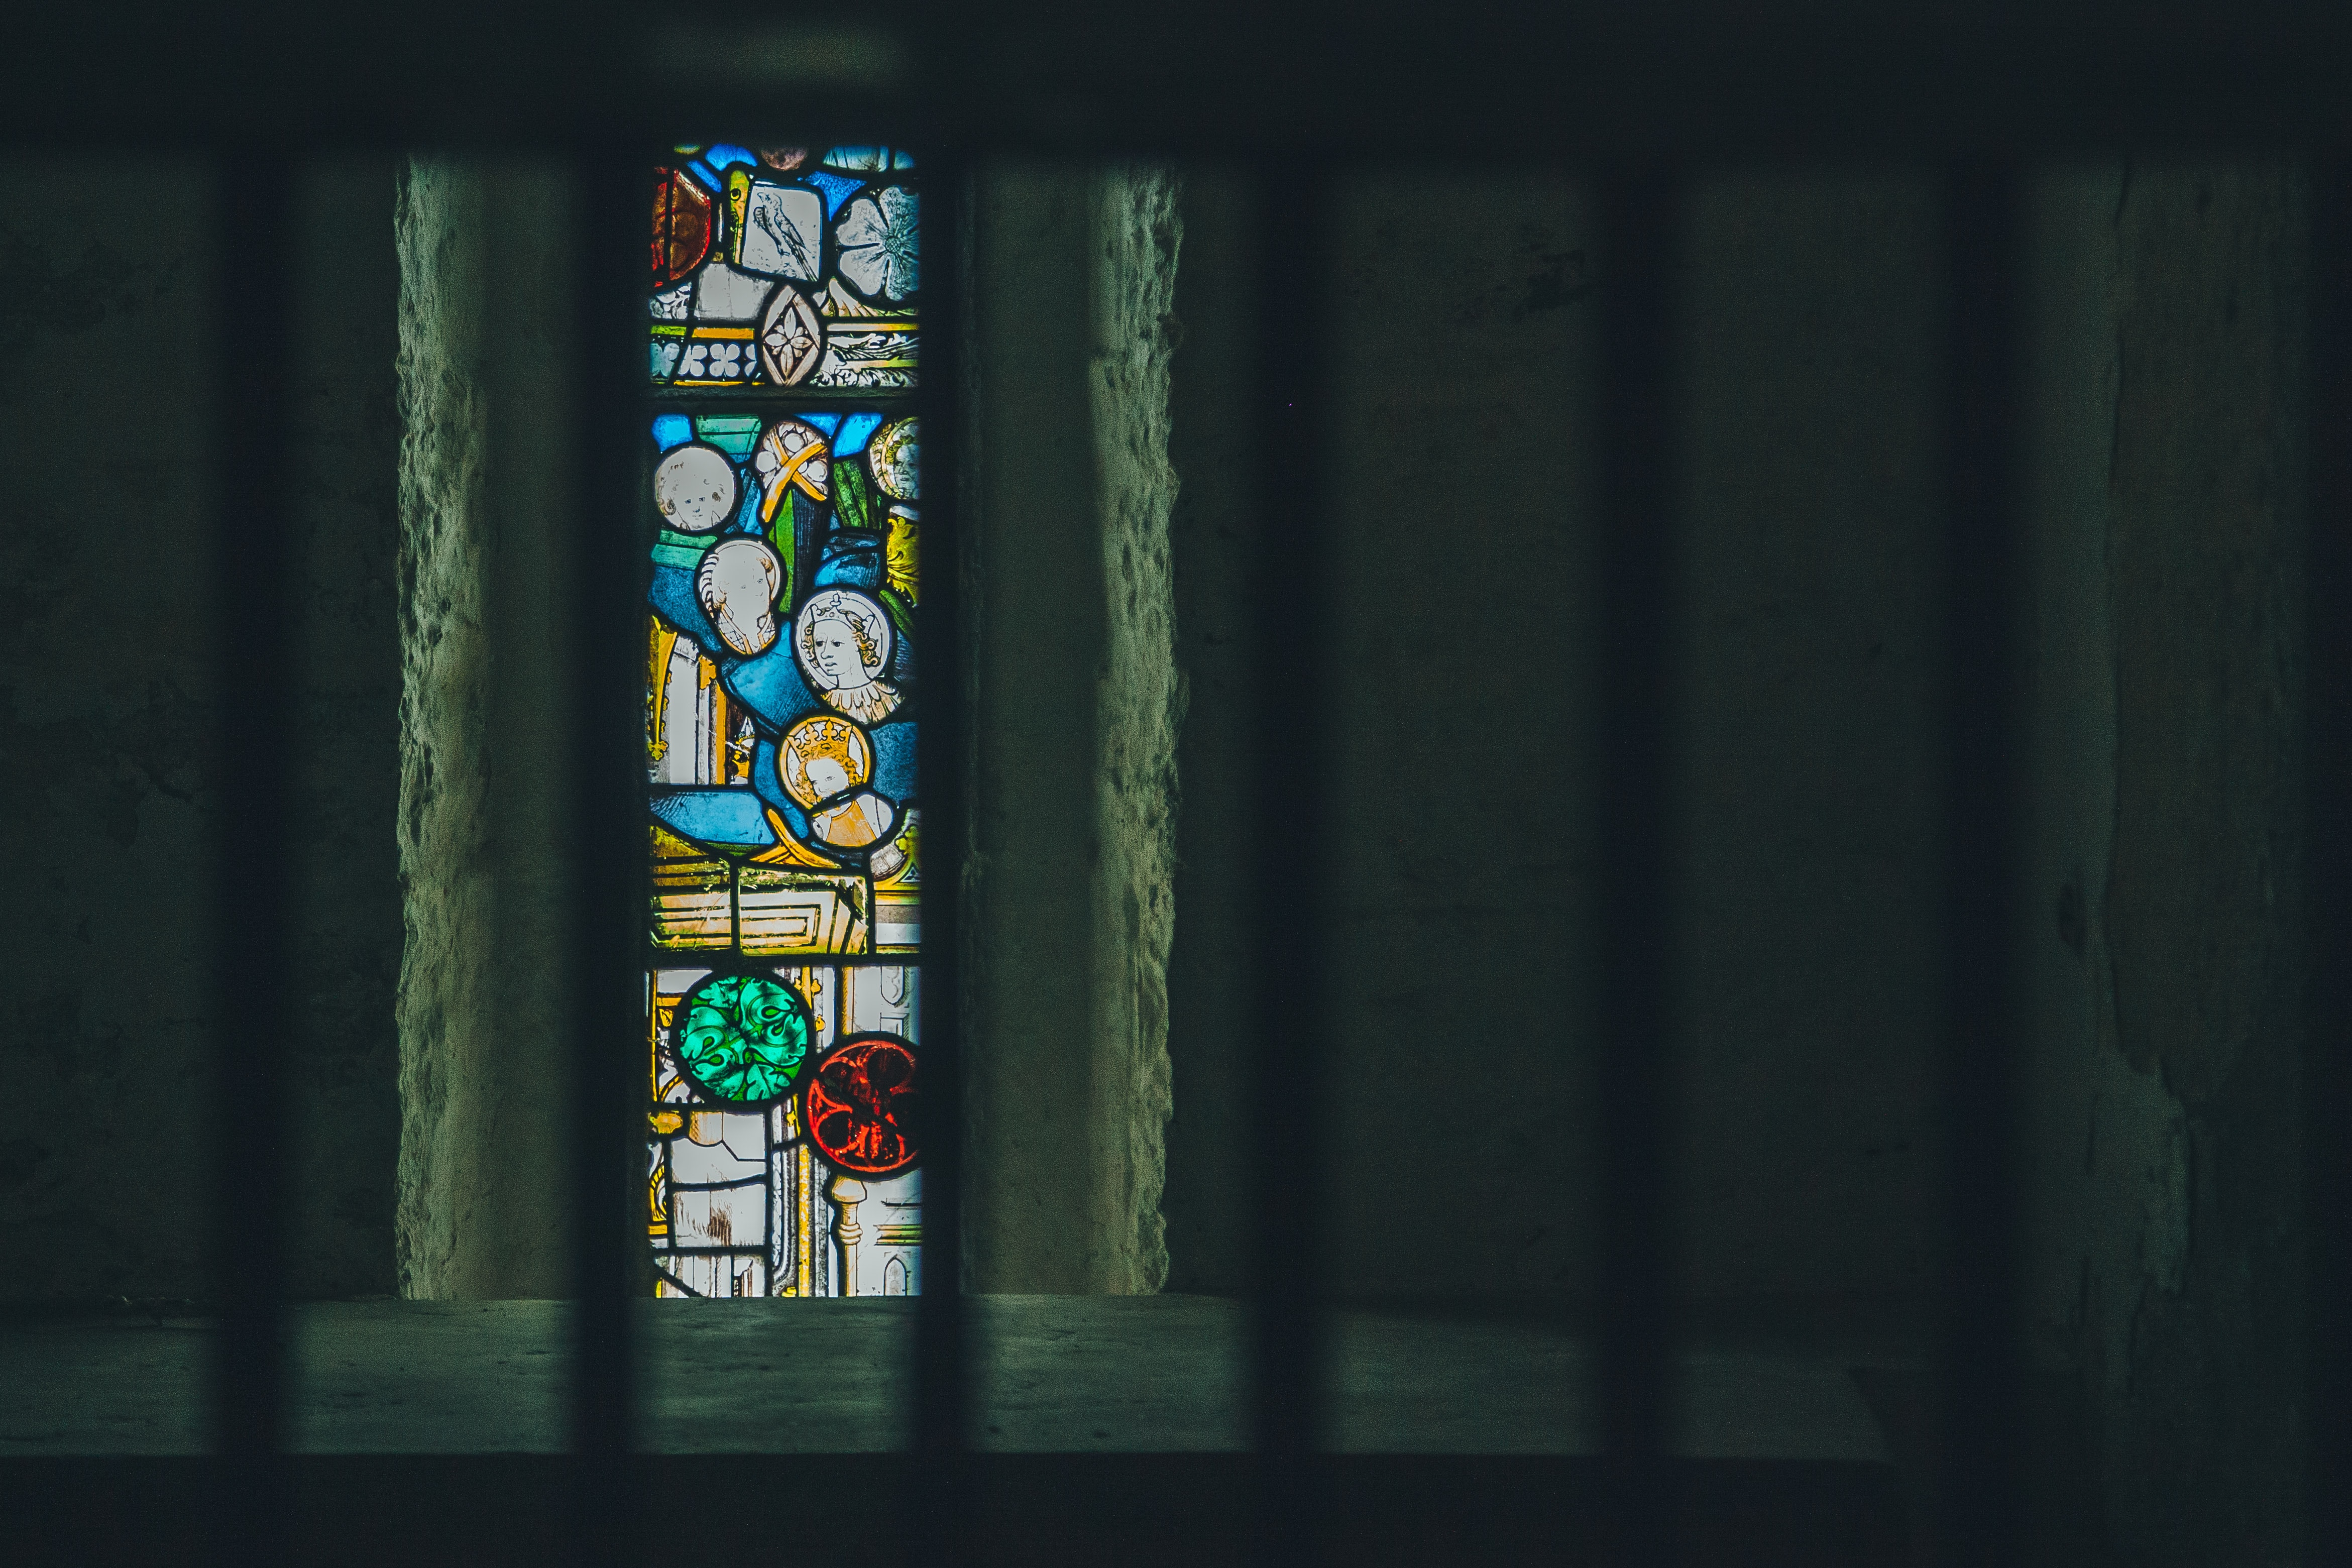 prison bars, jail, stained glass window